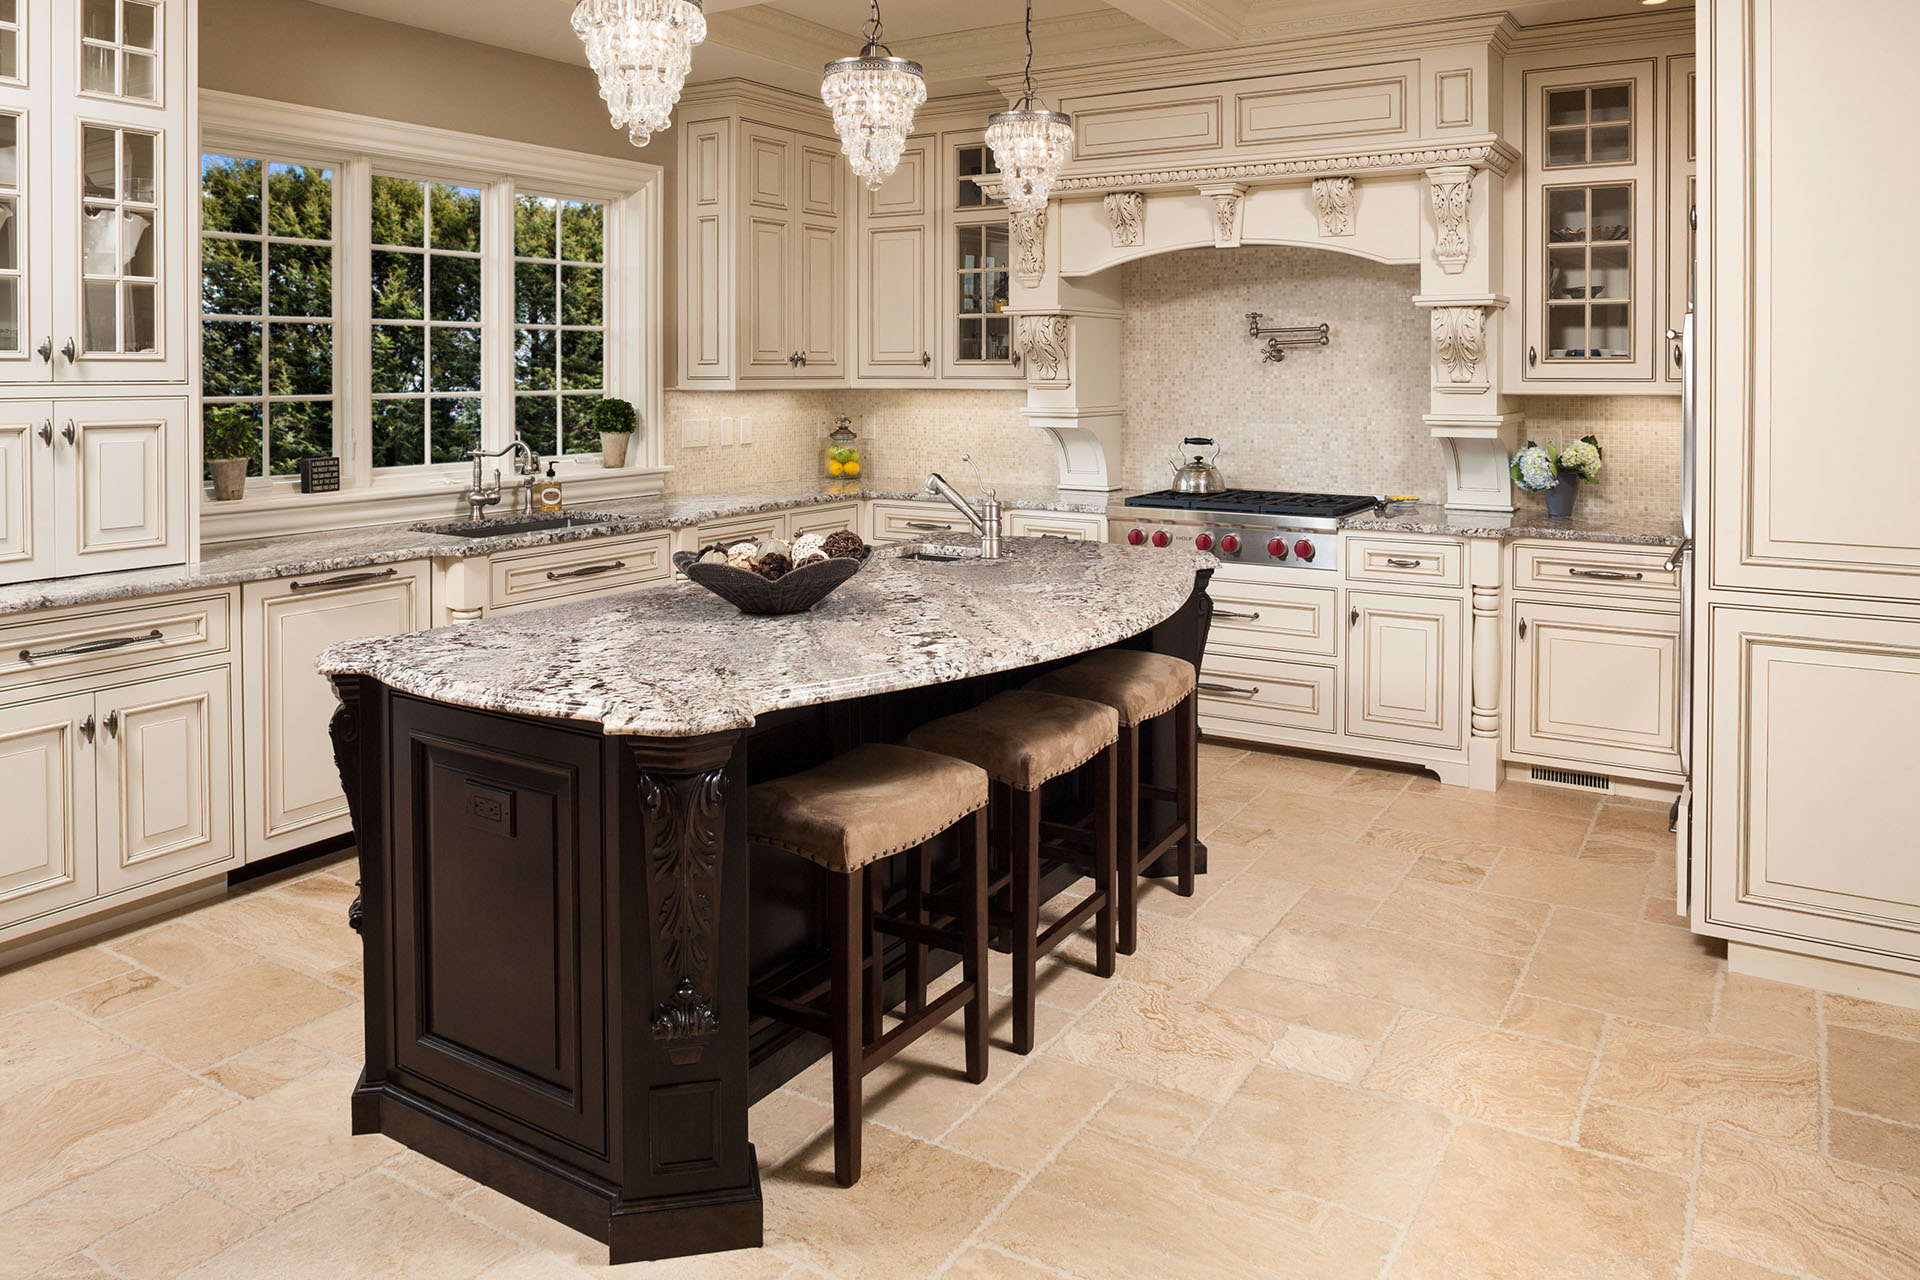 custom kitchen island cabinets design stone inc video and image gallery proview